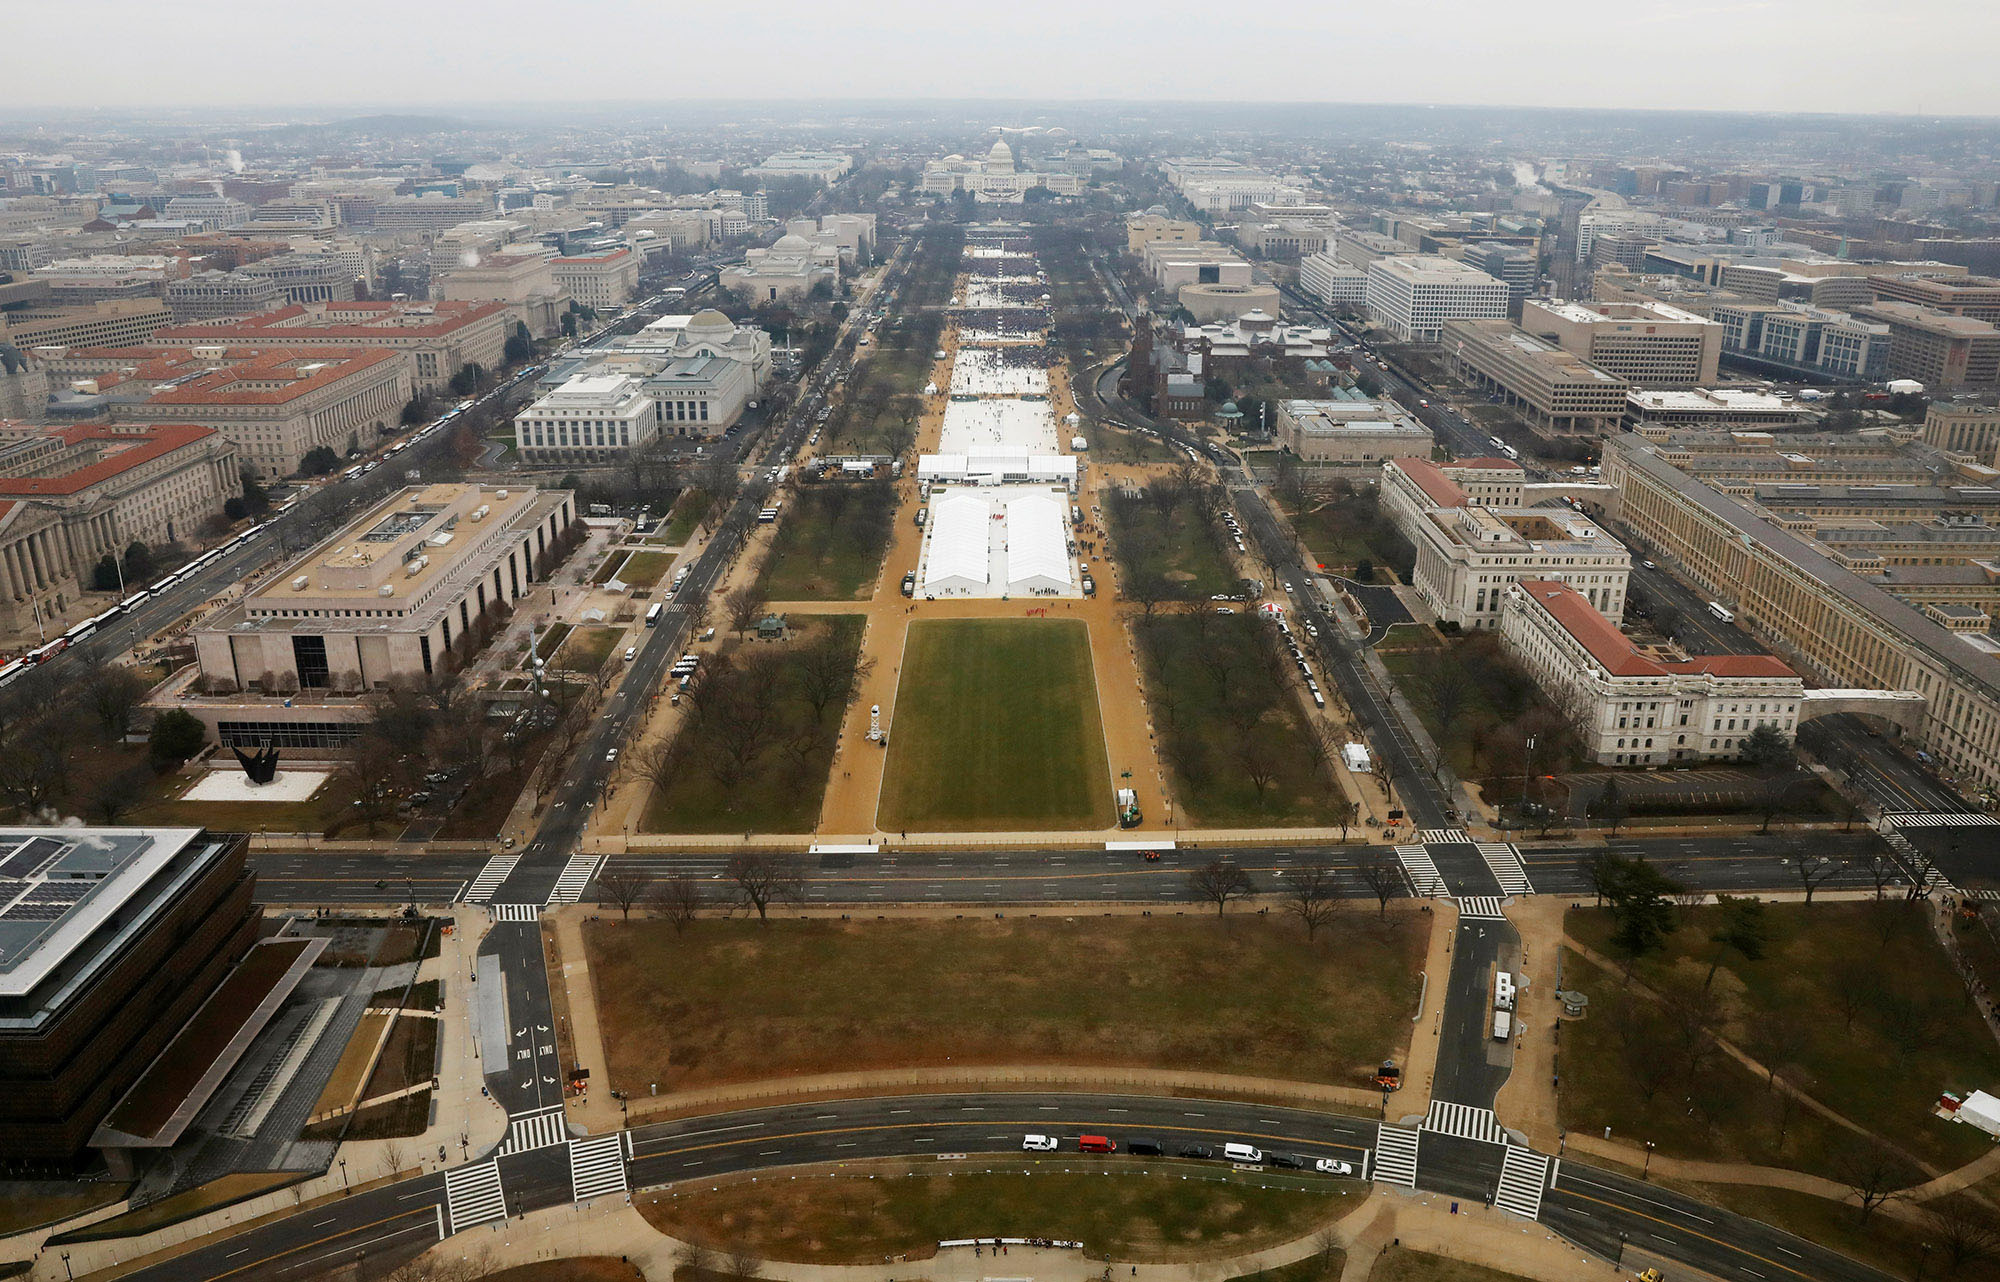 How Trumps Altered Landscape For >> Inauguration 2017 Attendance A Photographic Fact Check The Atlantic